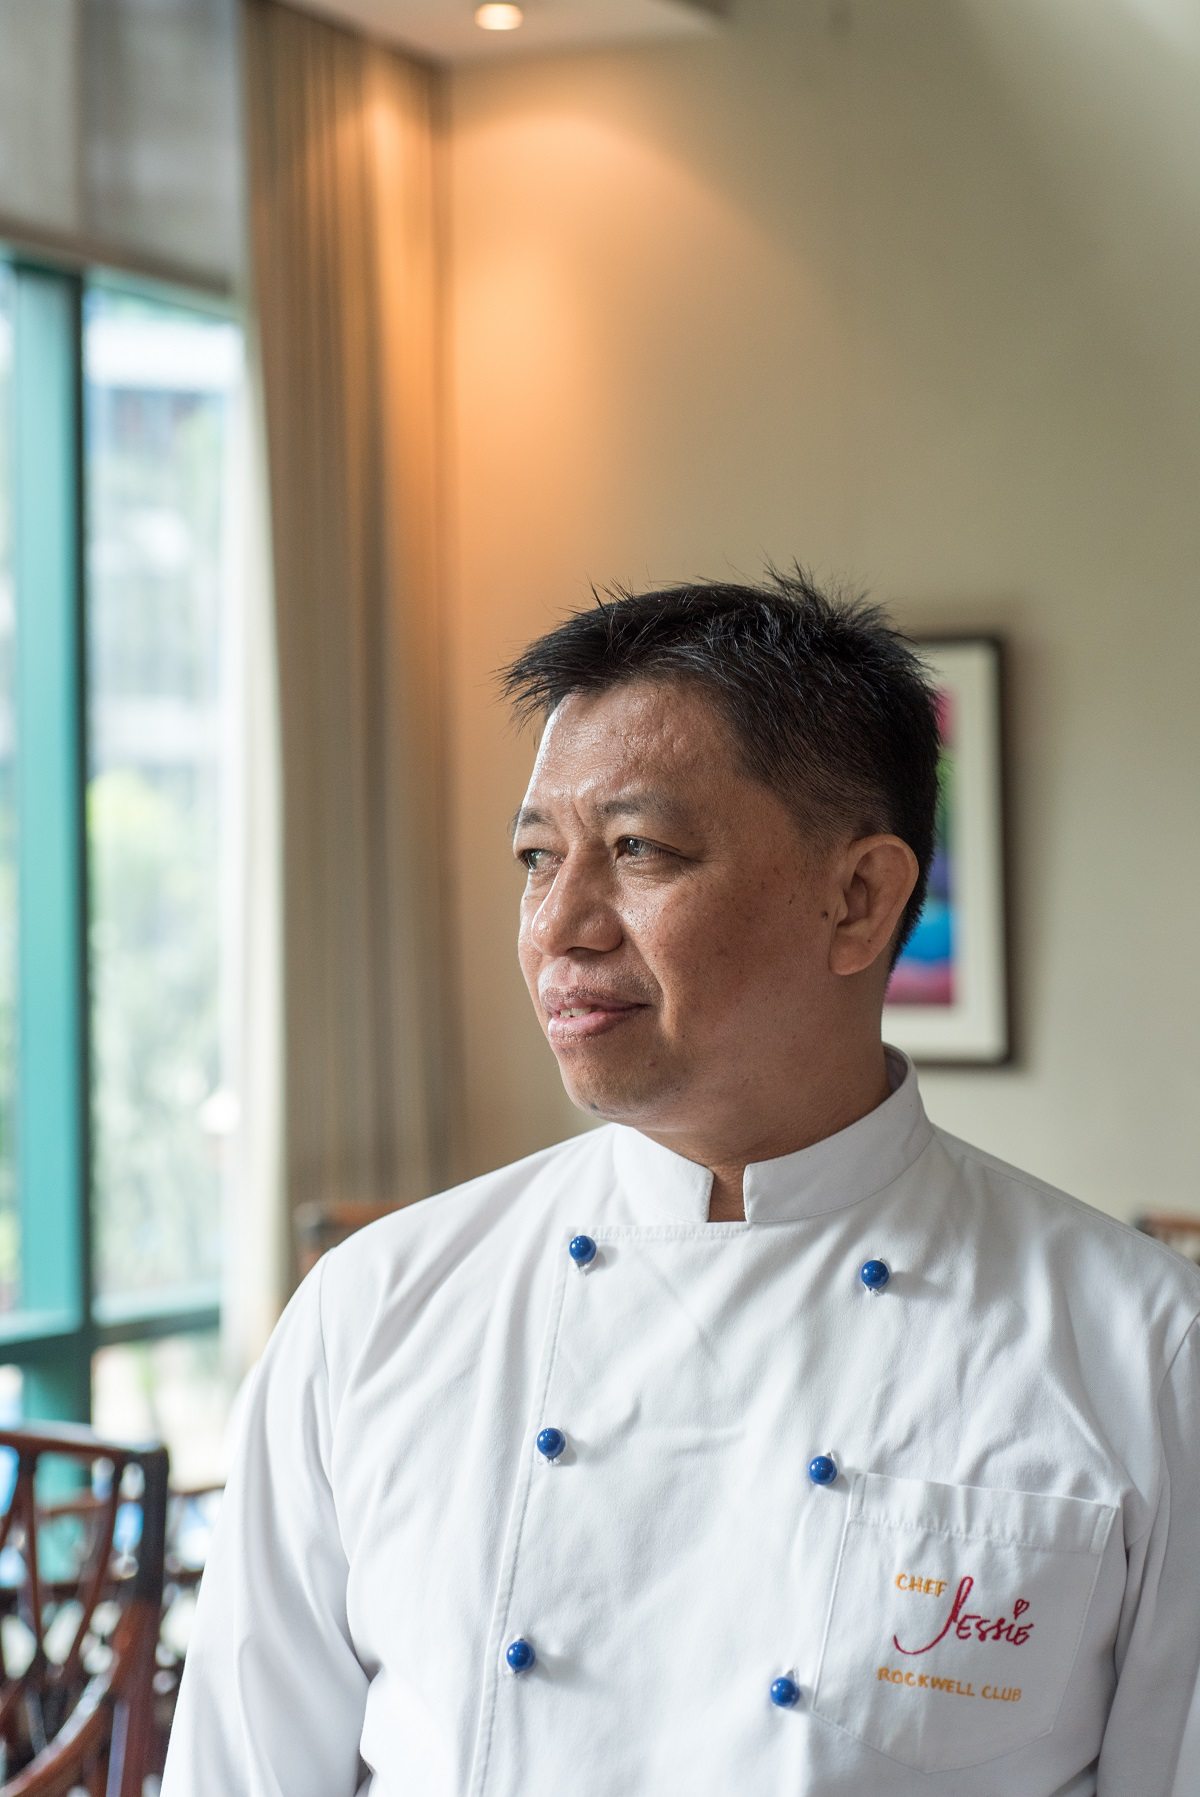 With no formal culinary background, chef Bai's career took a steady ride without pulling at any stops